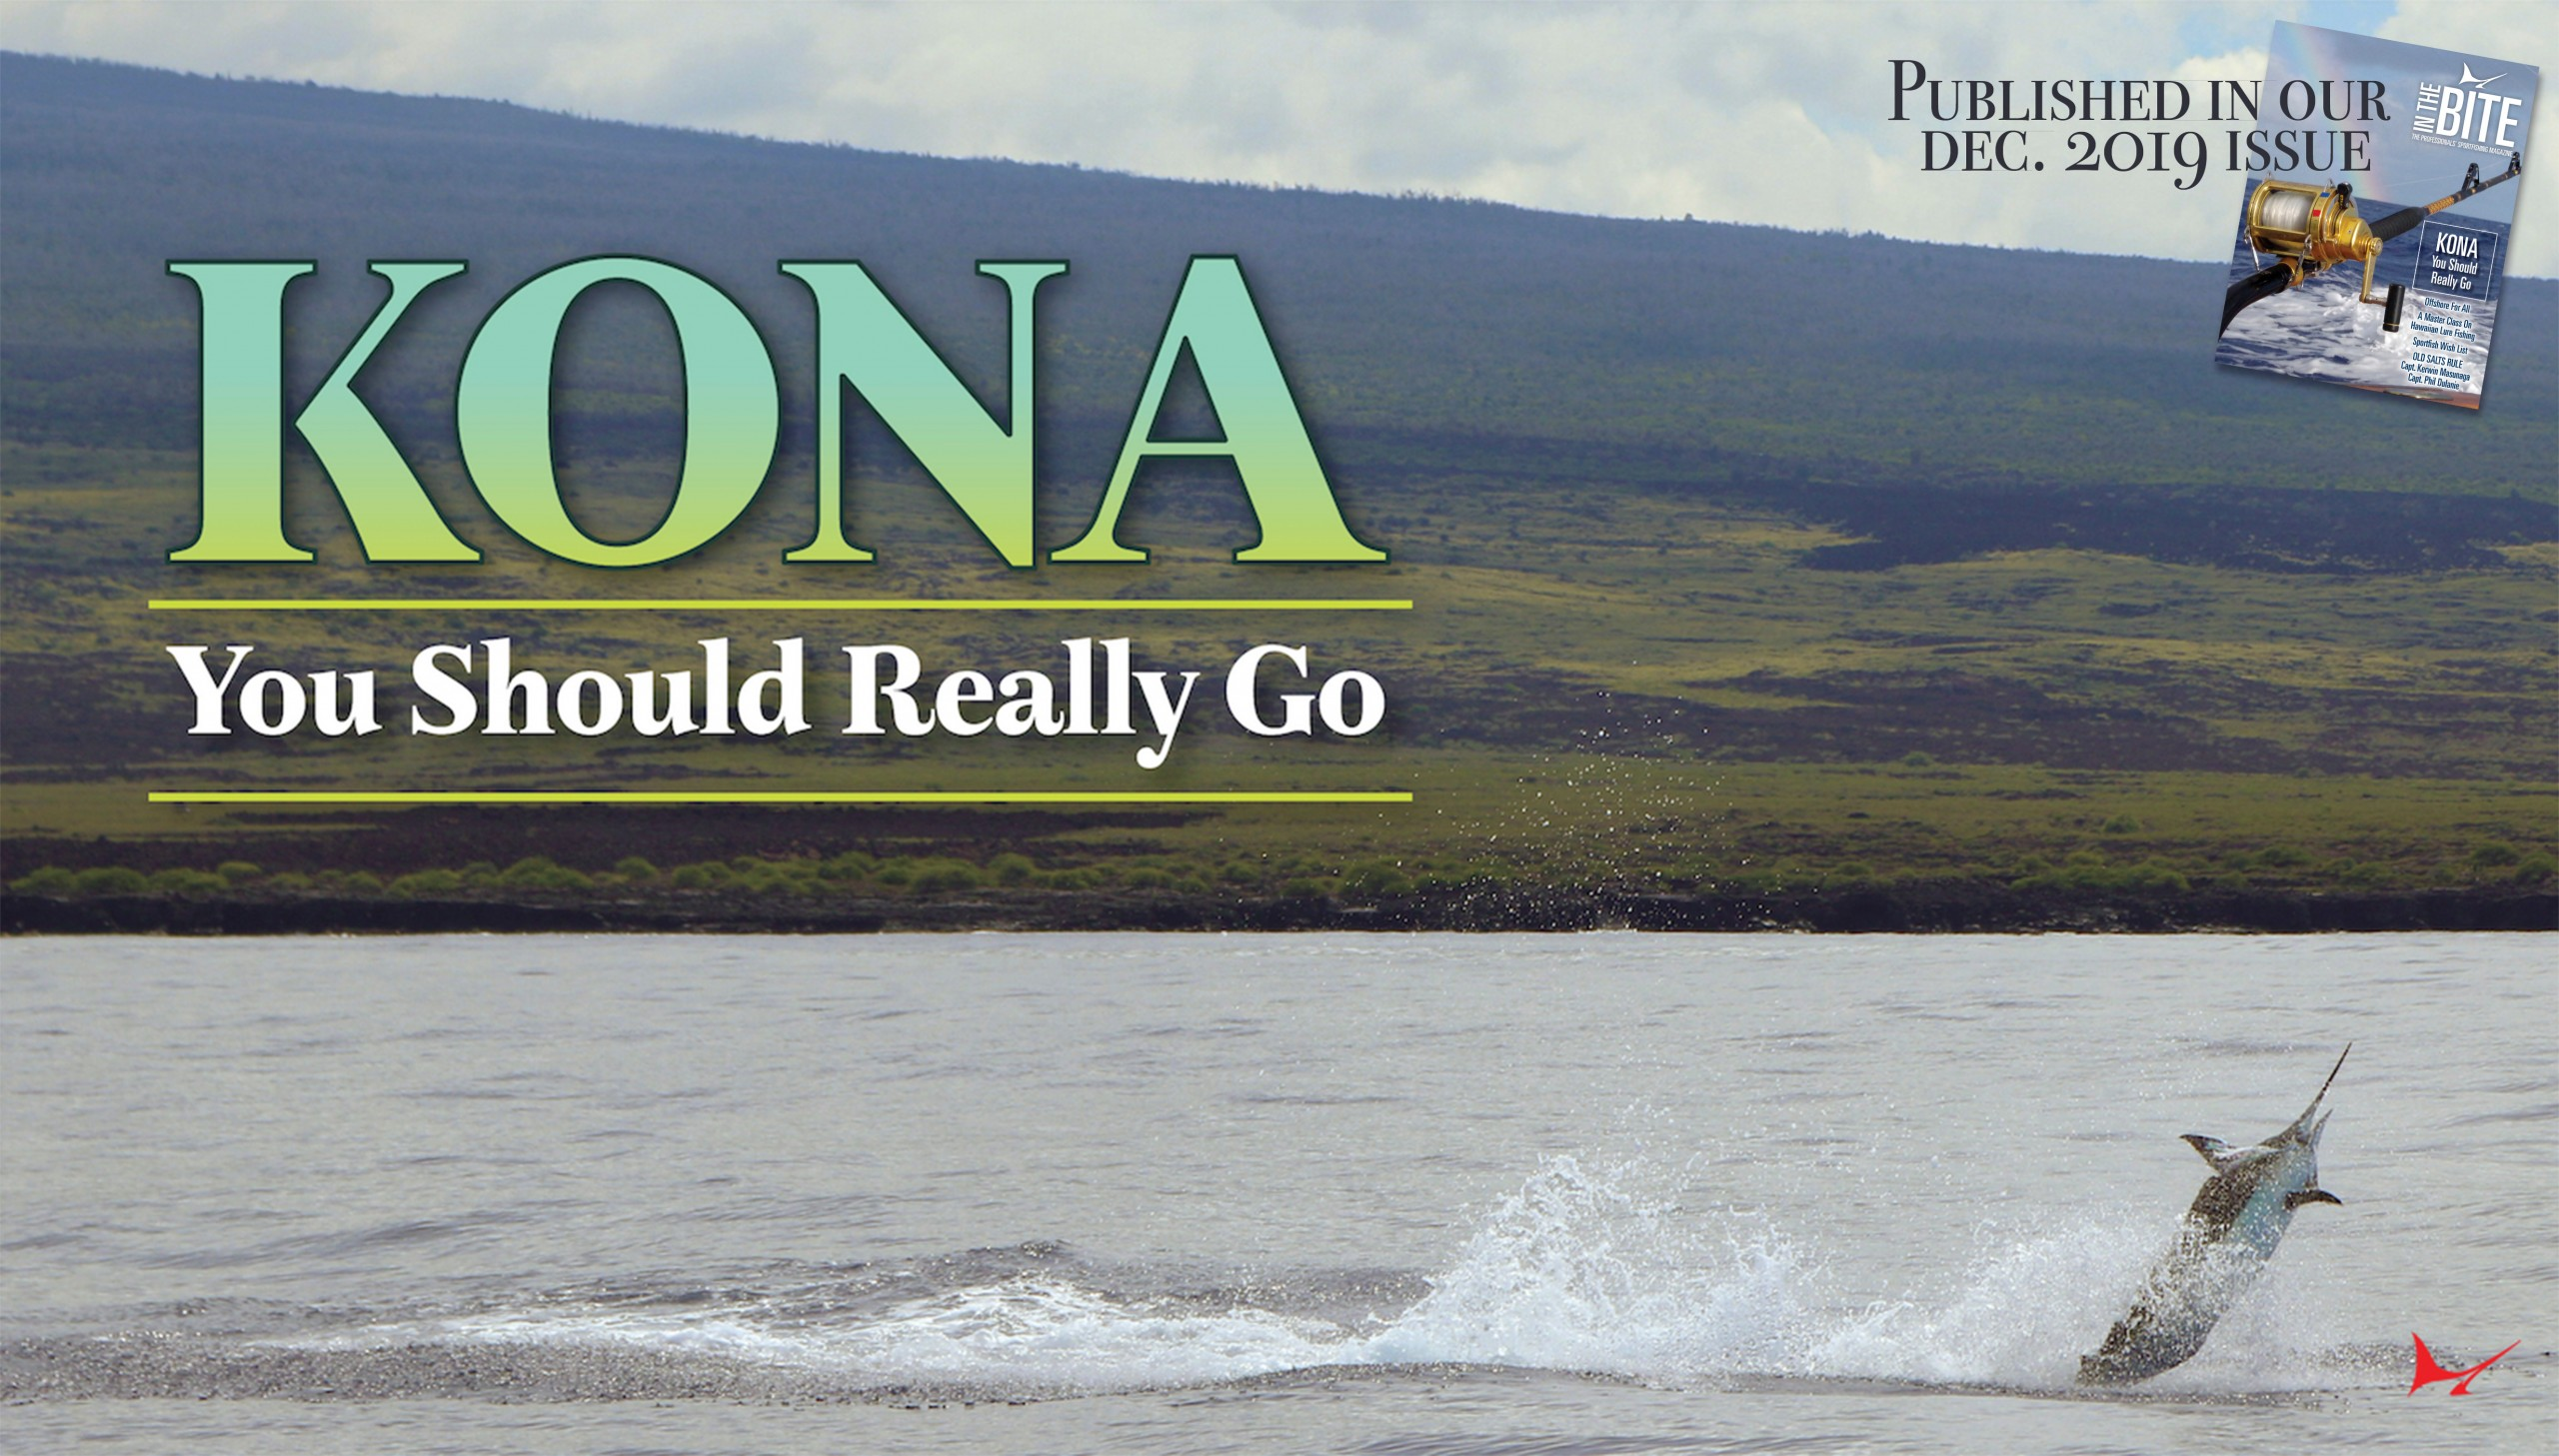 Kona: You Should Really Go